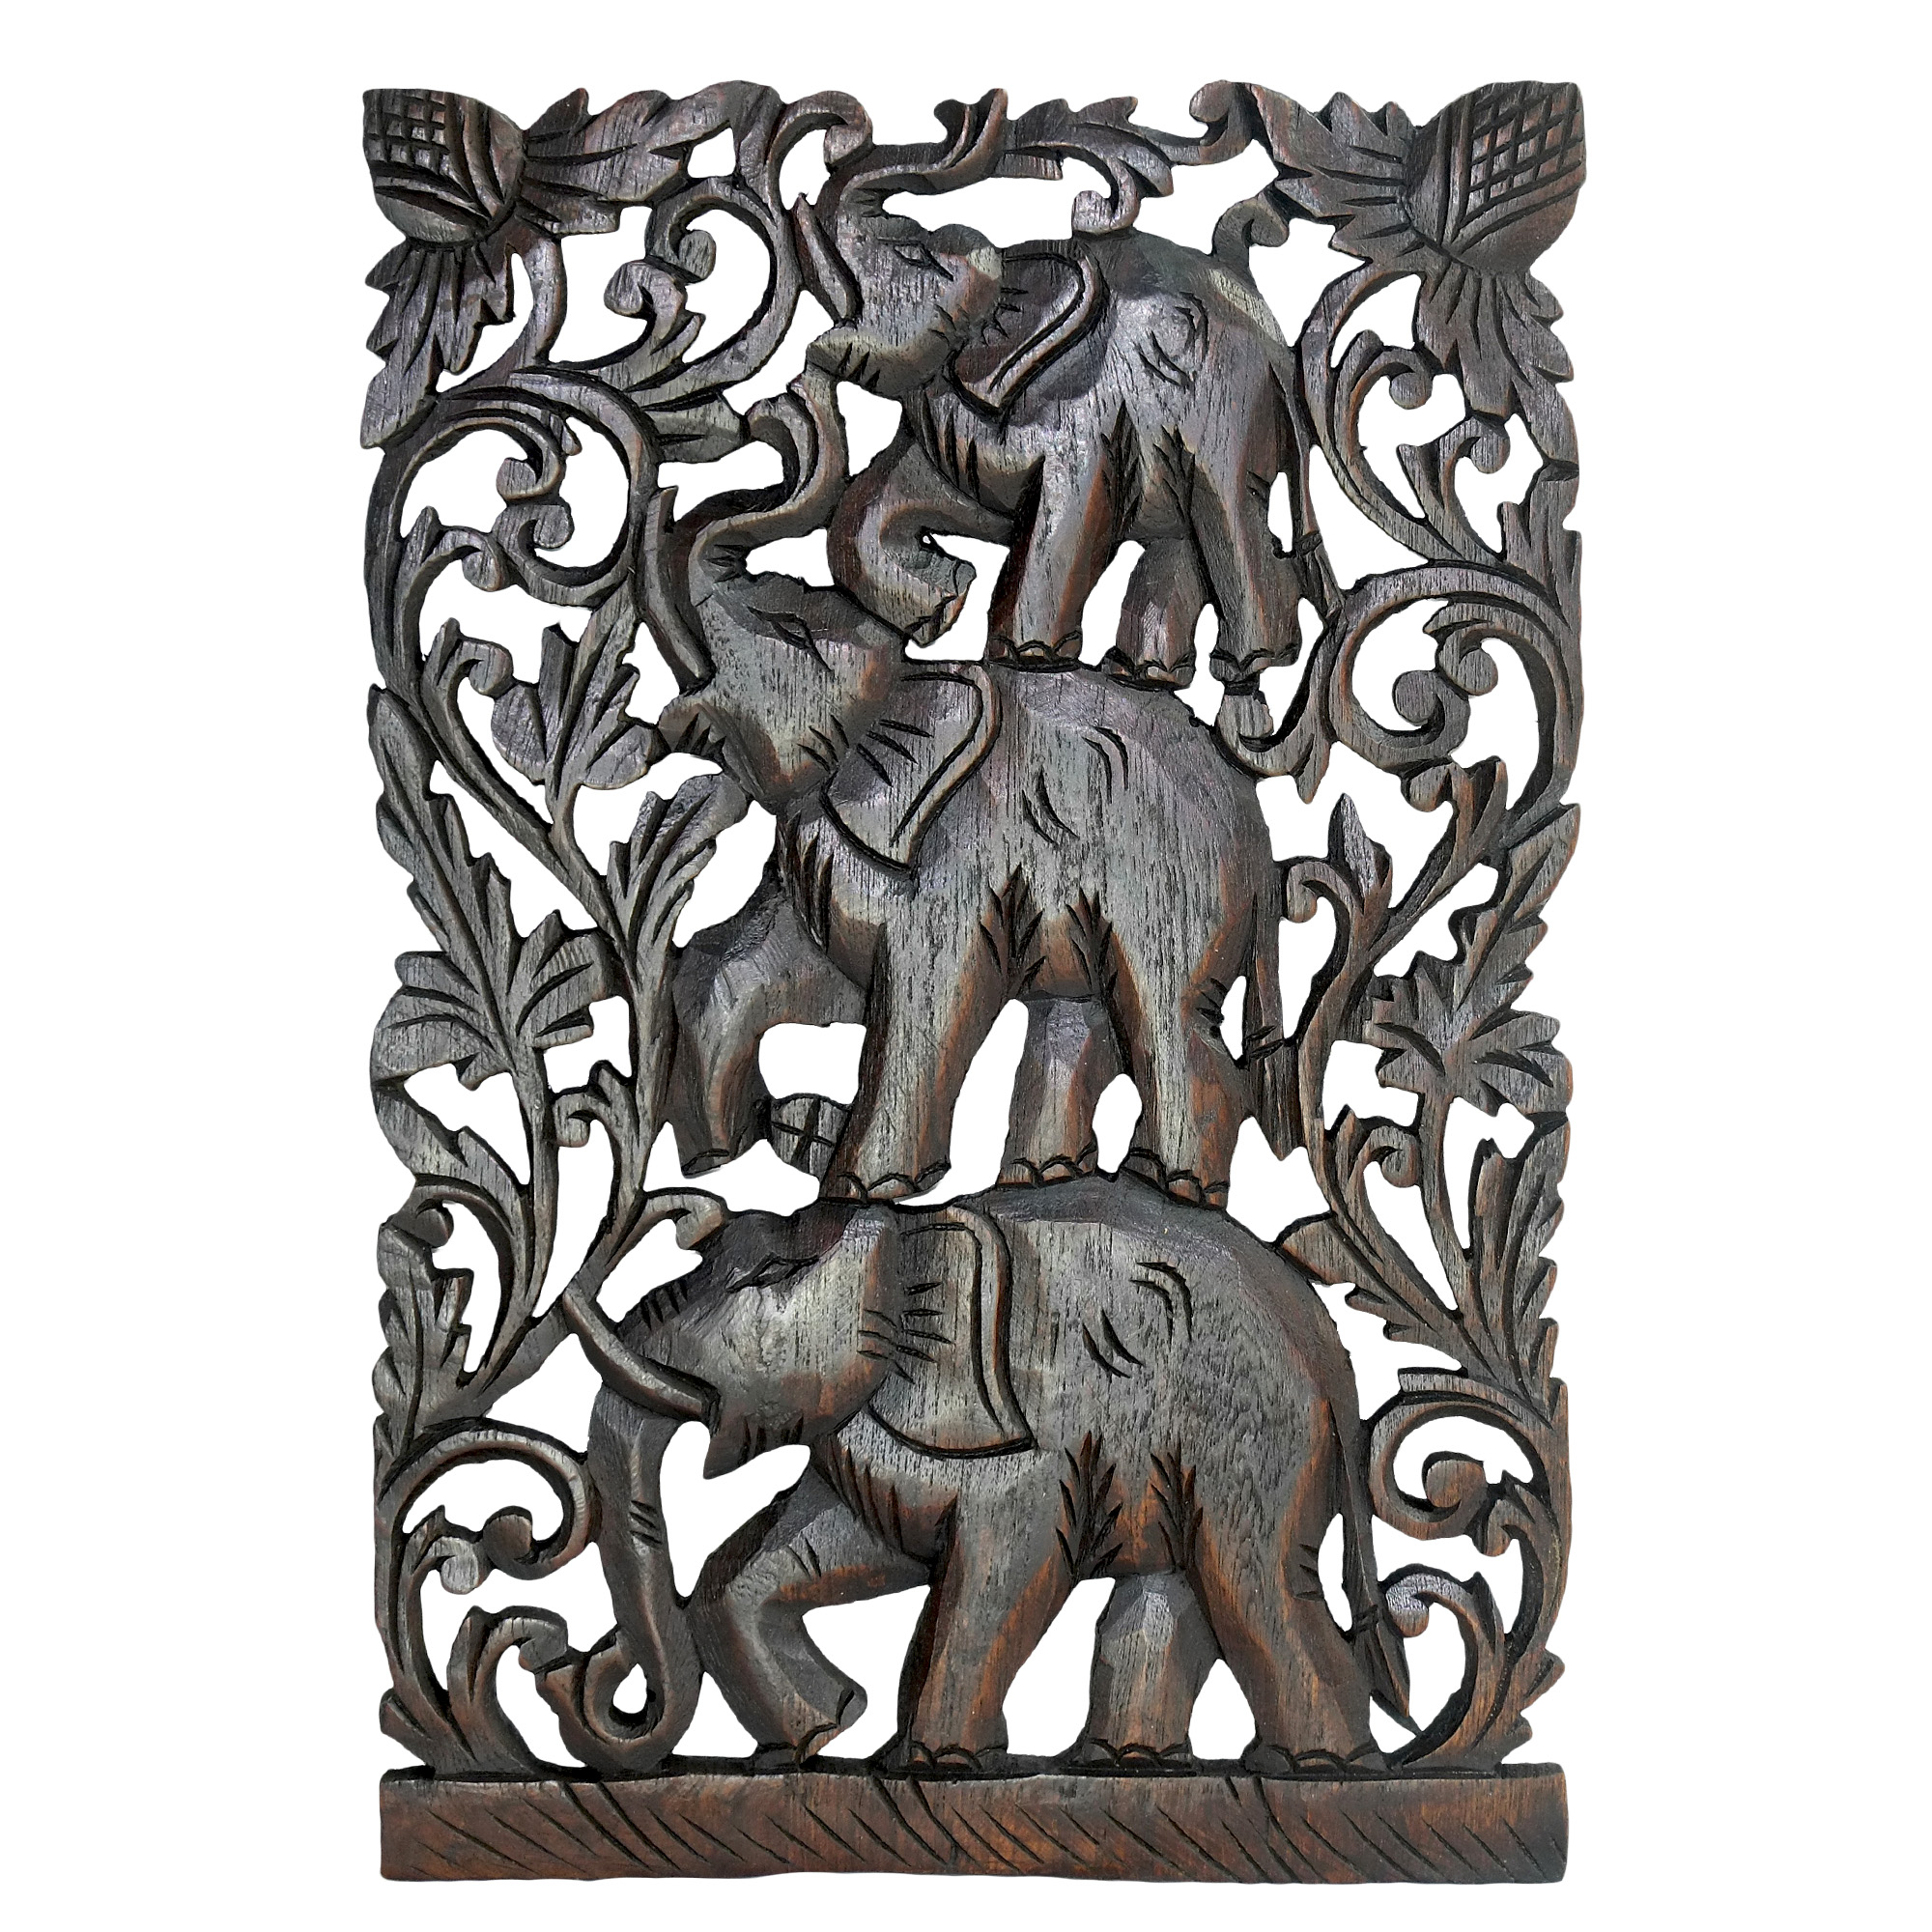 Joyful Circus Elephant Family Hand Carved Relief Panel